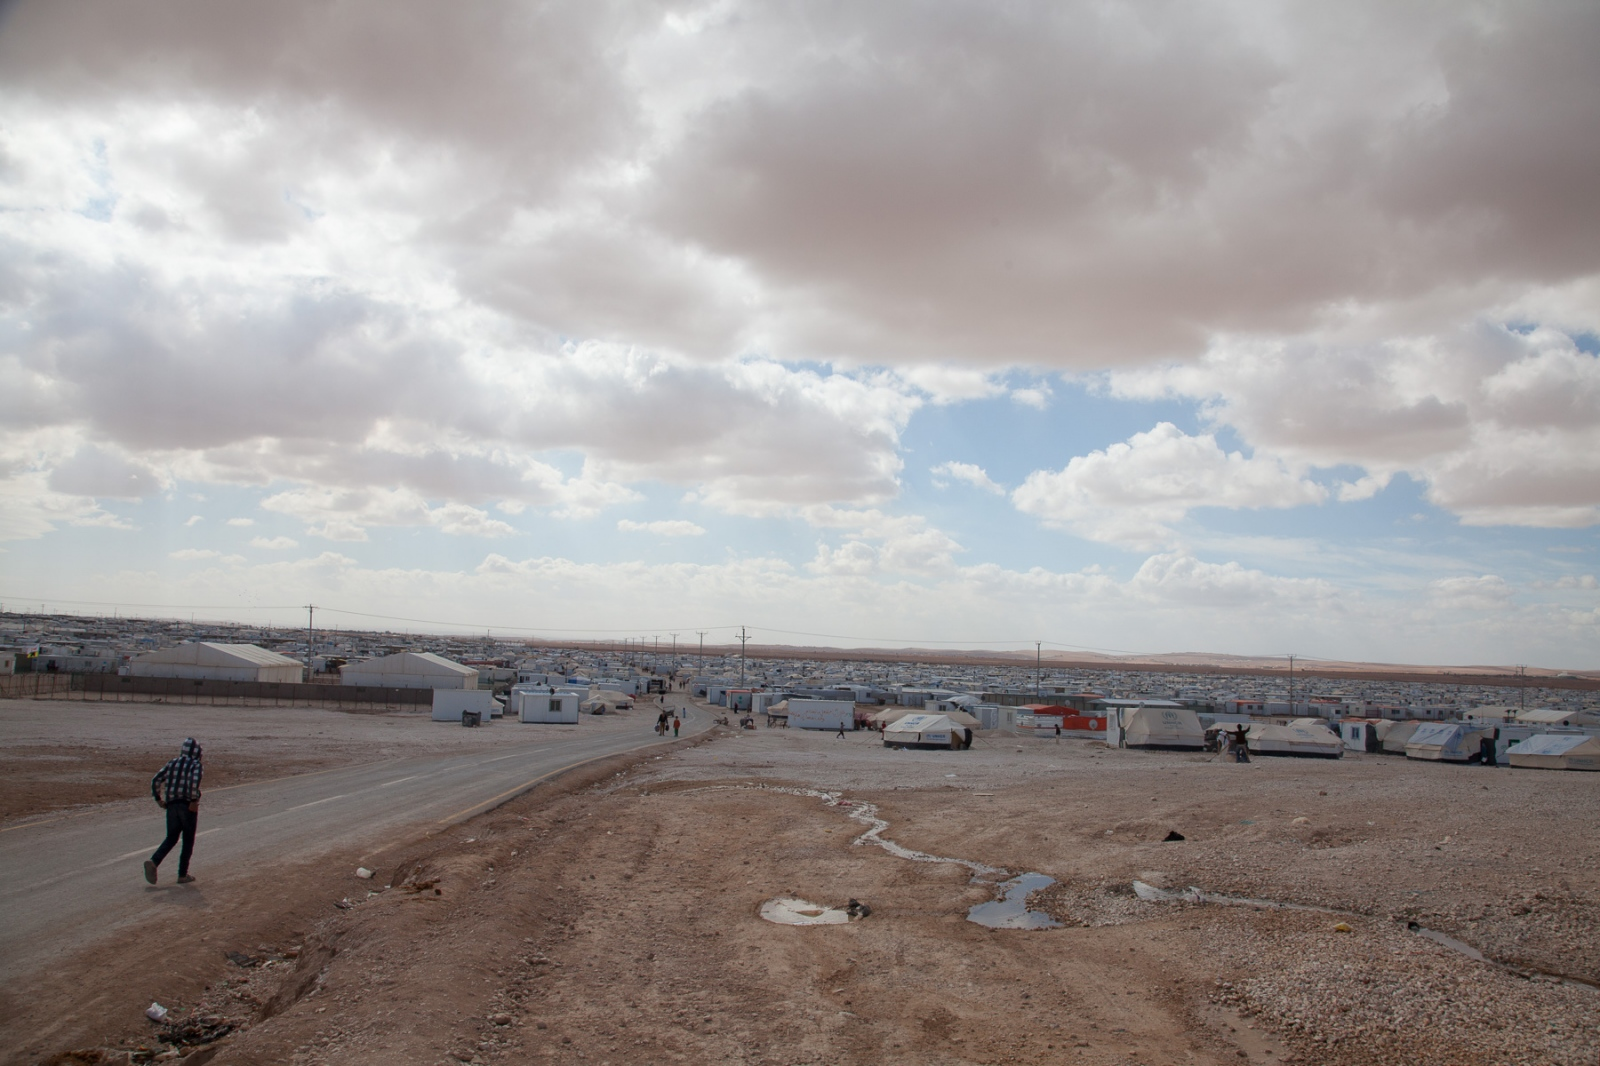 Jordan is one of the water poorest countries in the world and providing for the influx of refugees has put a major strain on its resources and economy.